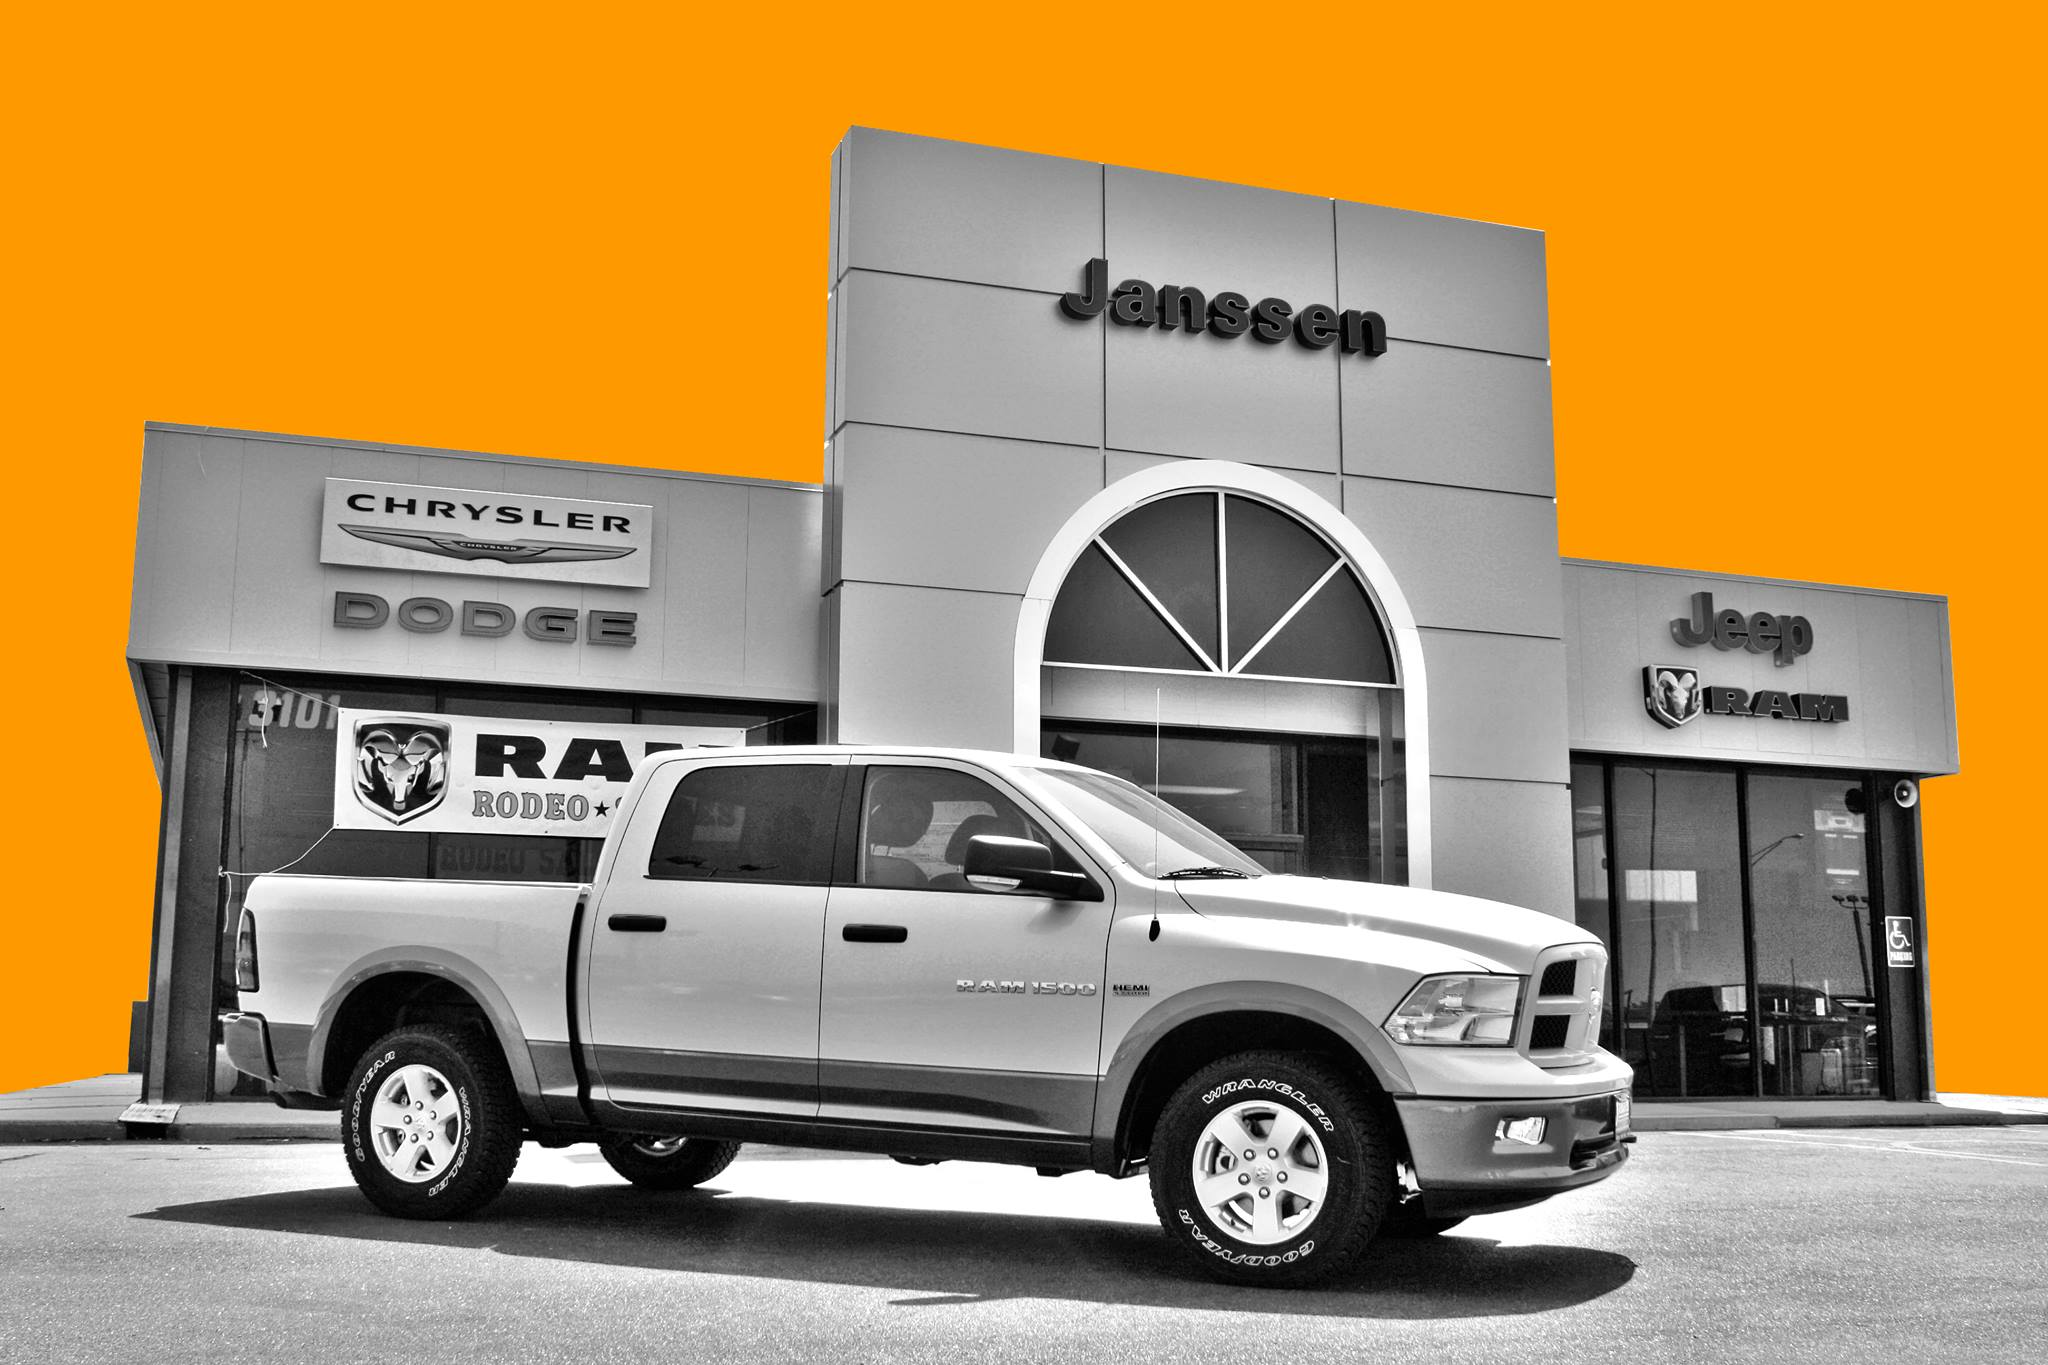 New Chrysler Dodge Jeep Ram & Used cars for sale Janssen Chrysler